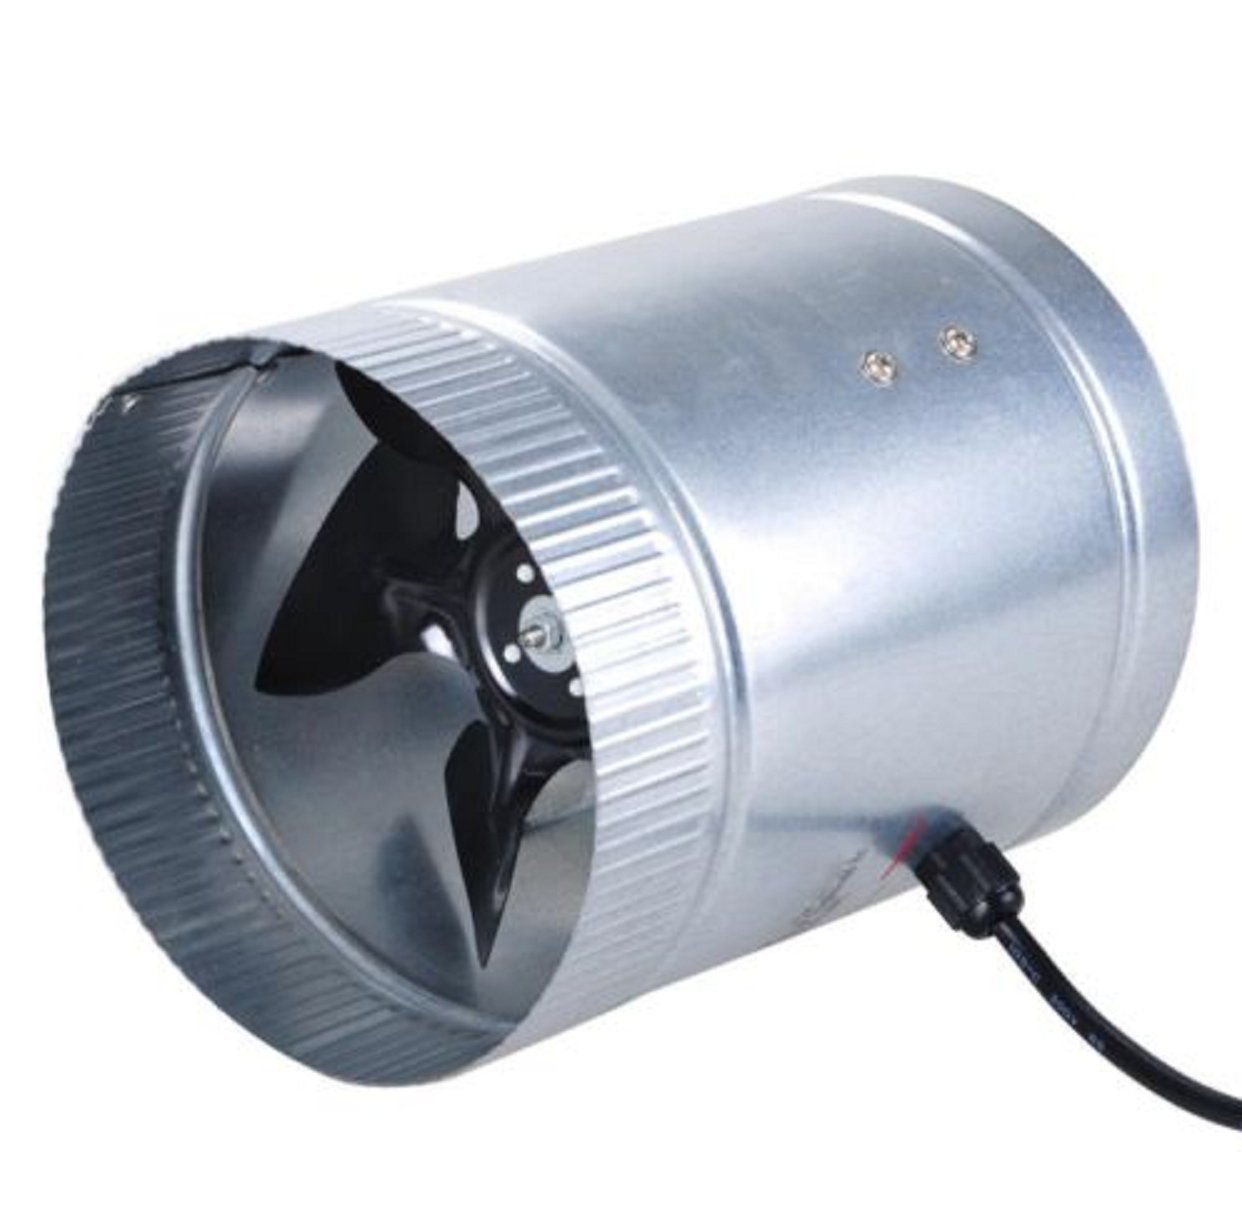 6 Inch Fan Duct Inline 260CFM Booster Exhaust Cooling Air System PC Blower Aluminum Blade Tool Cooler